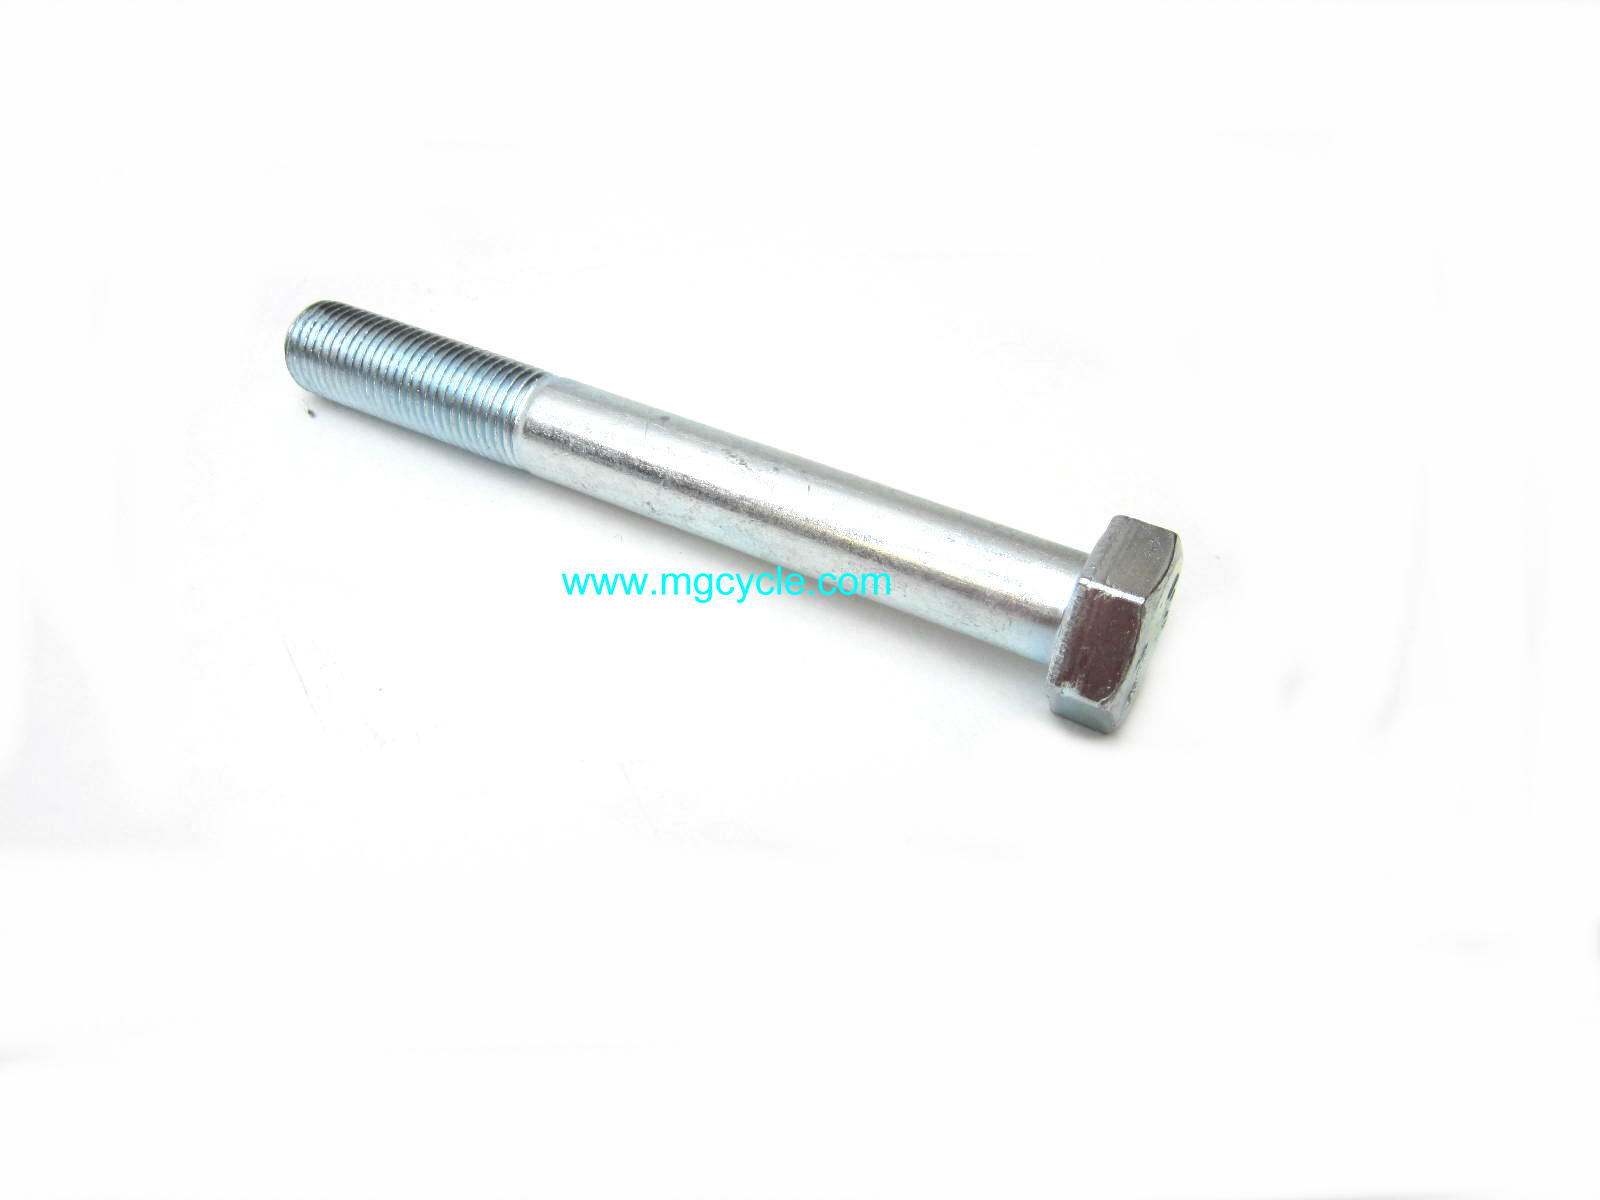 M12 hex bolt 100mm V700, Amb, Eld fork pinch bolt